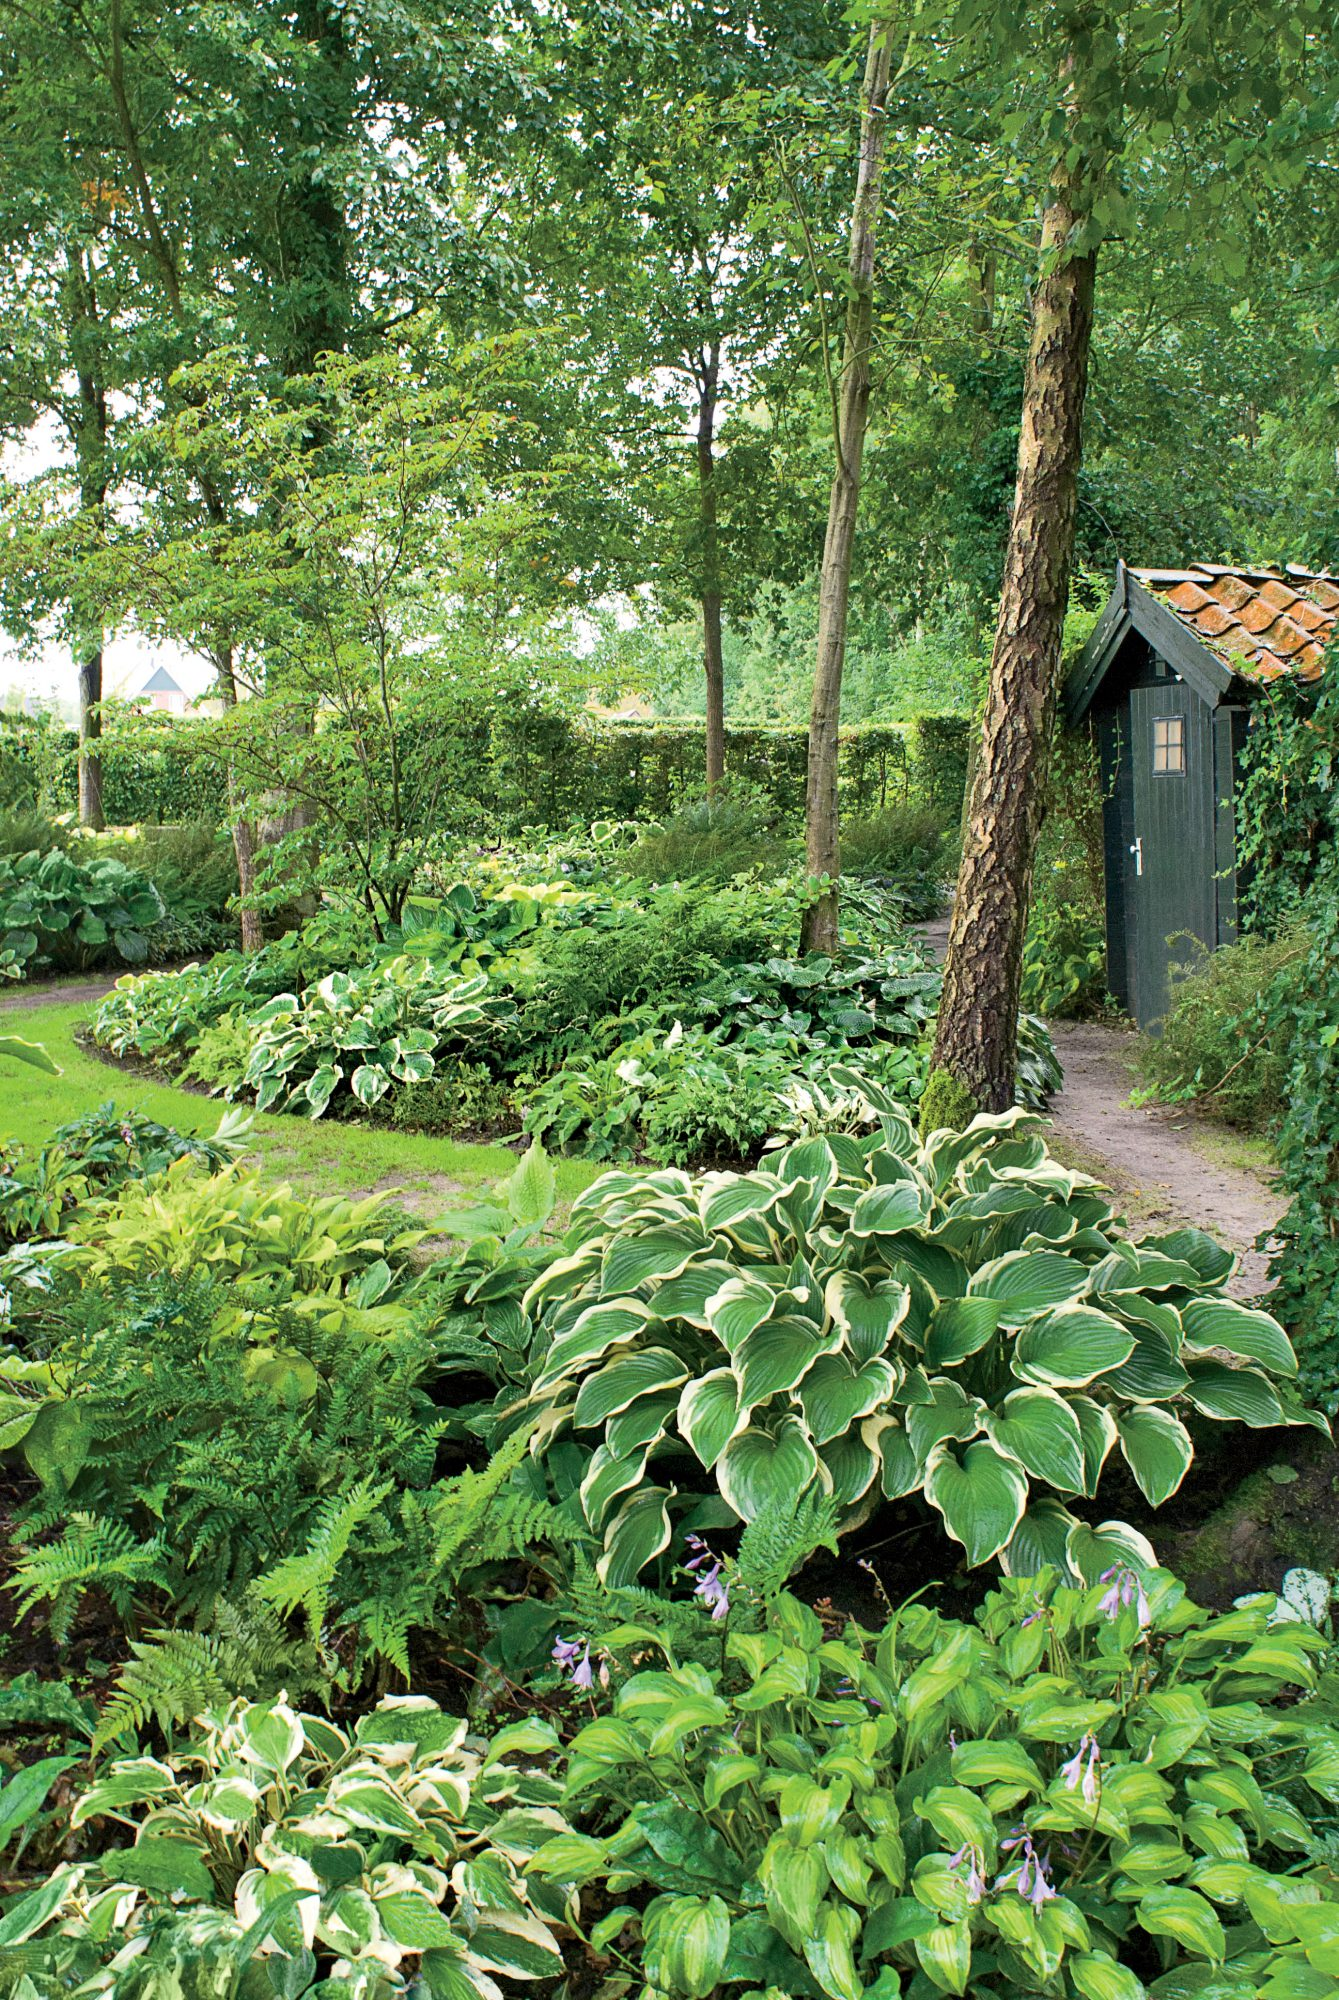 Hostas in Shaded Garden with Shed